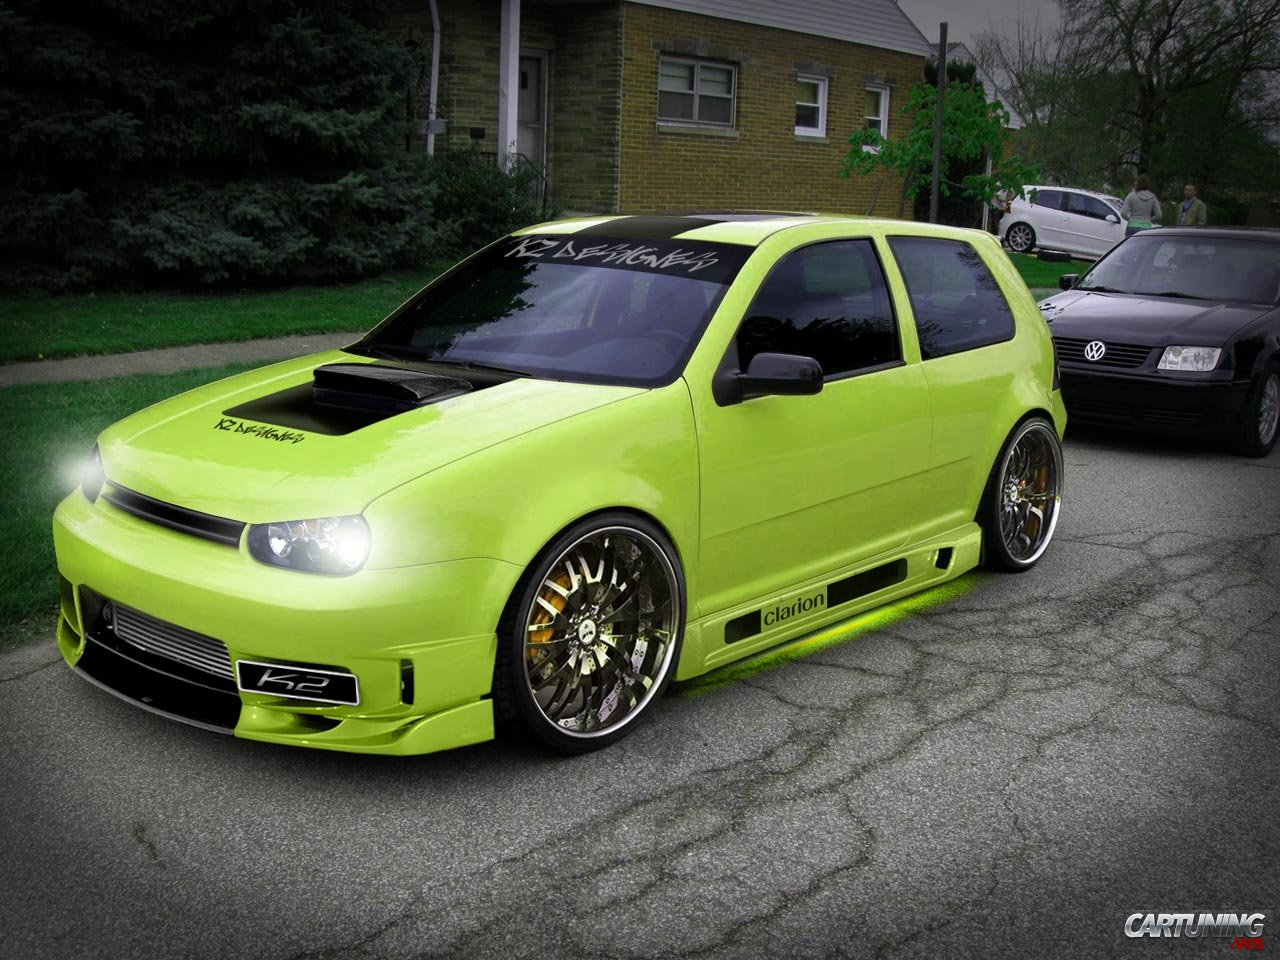 Tuning Volkswagen Golf Mk4 187 Cartuning Best Car Tuning